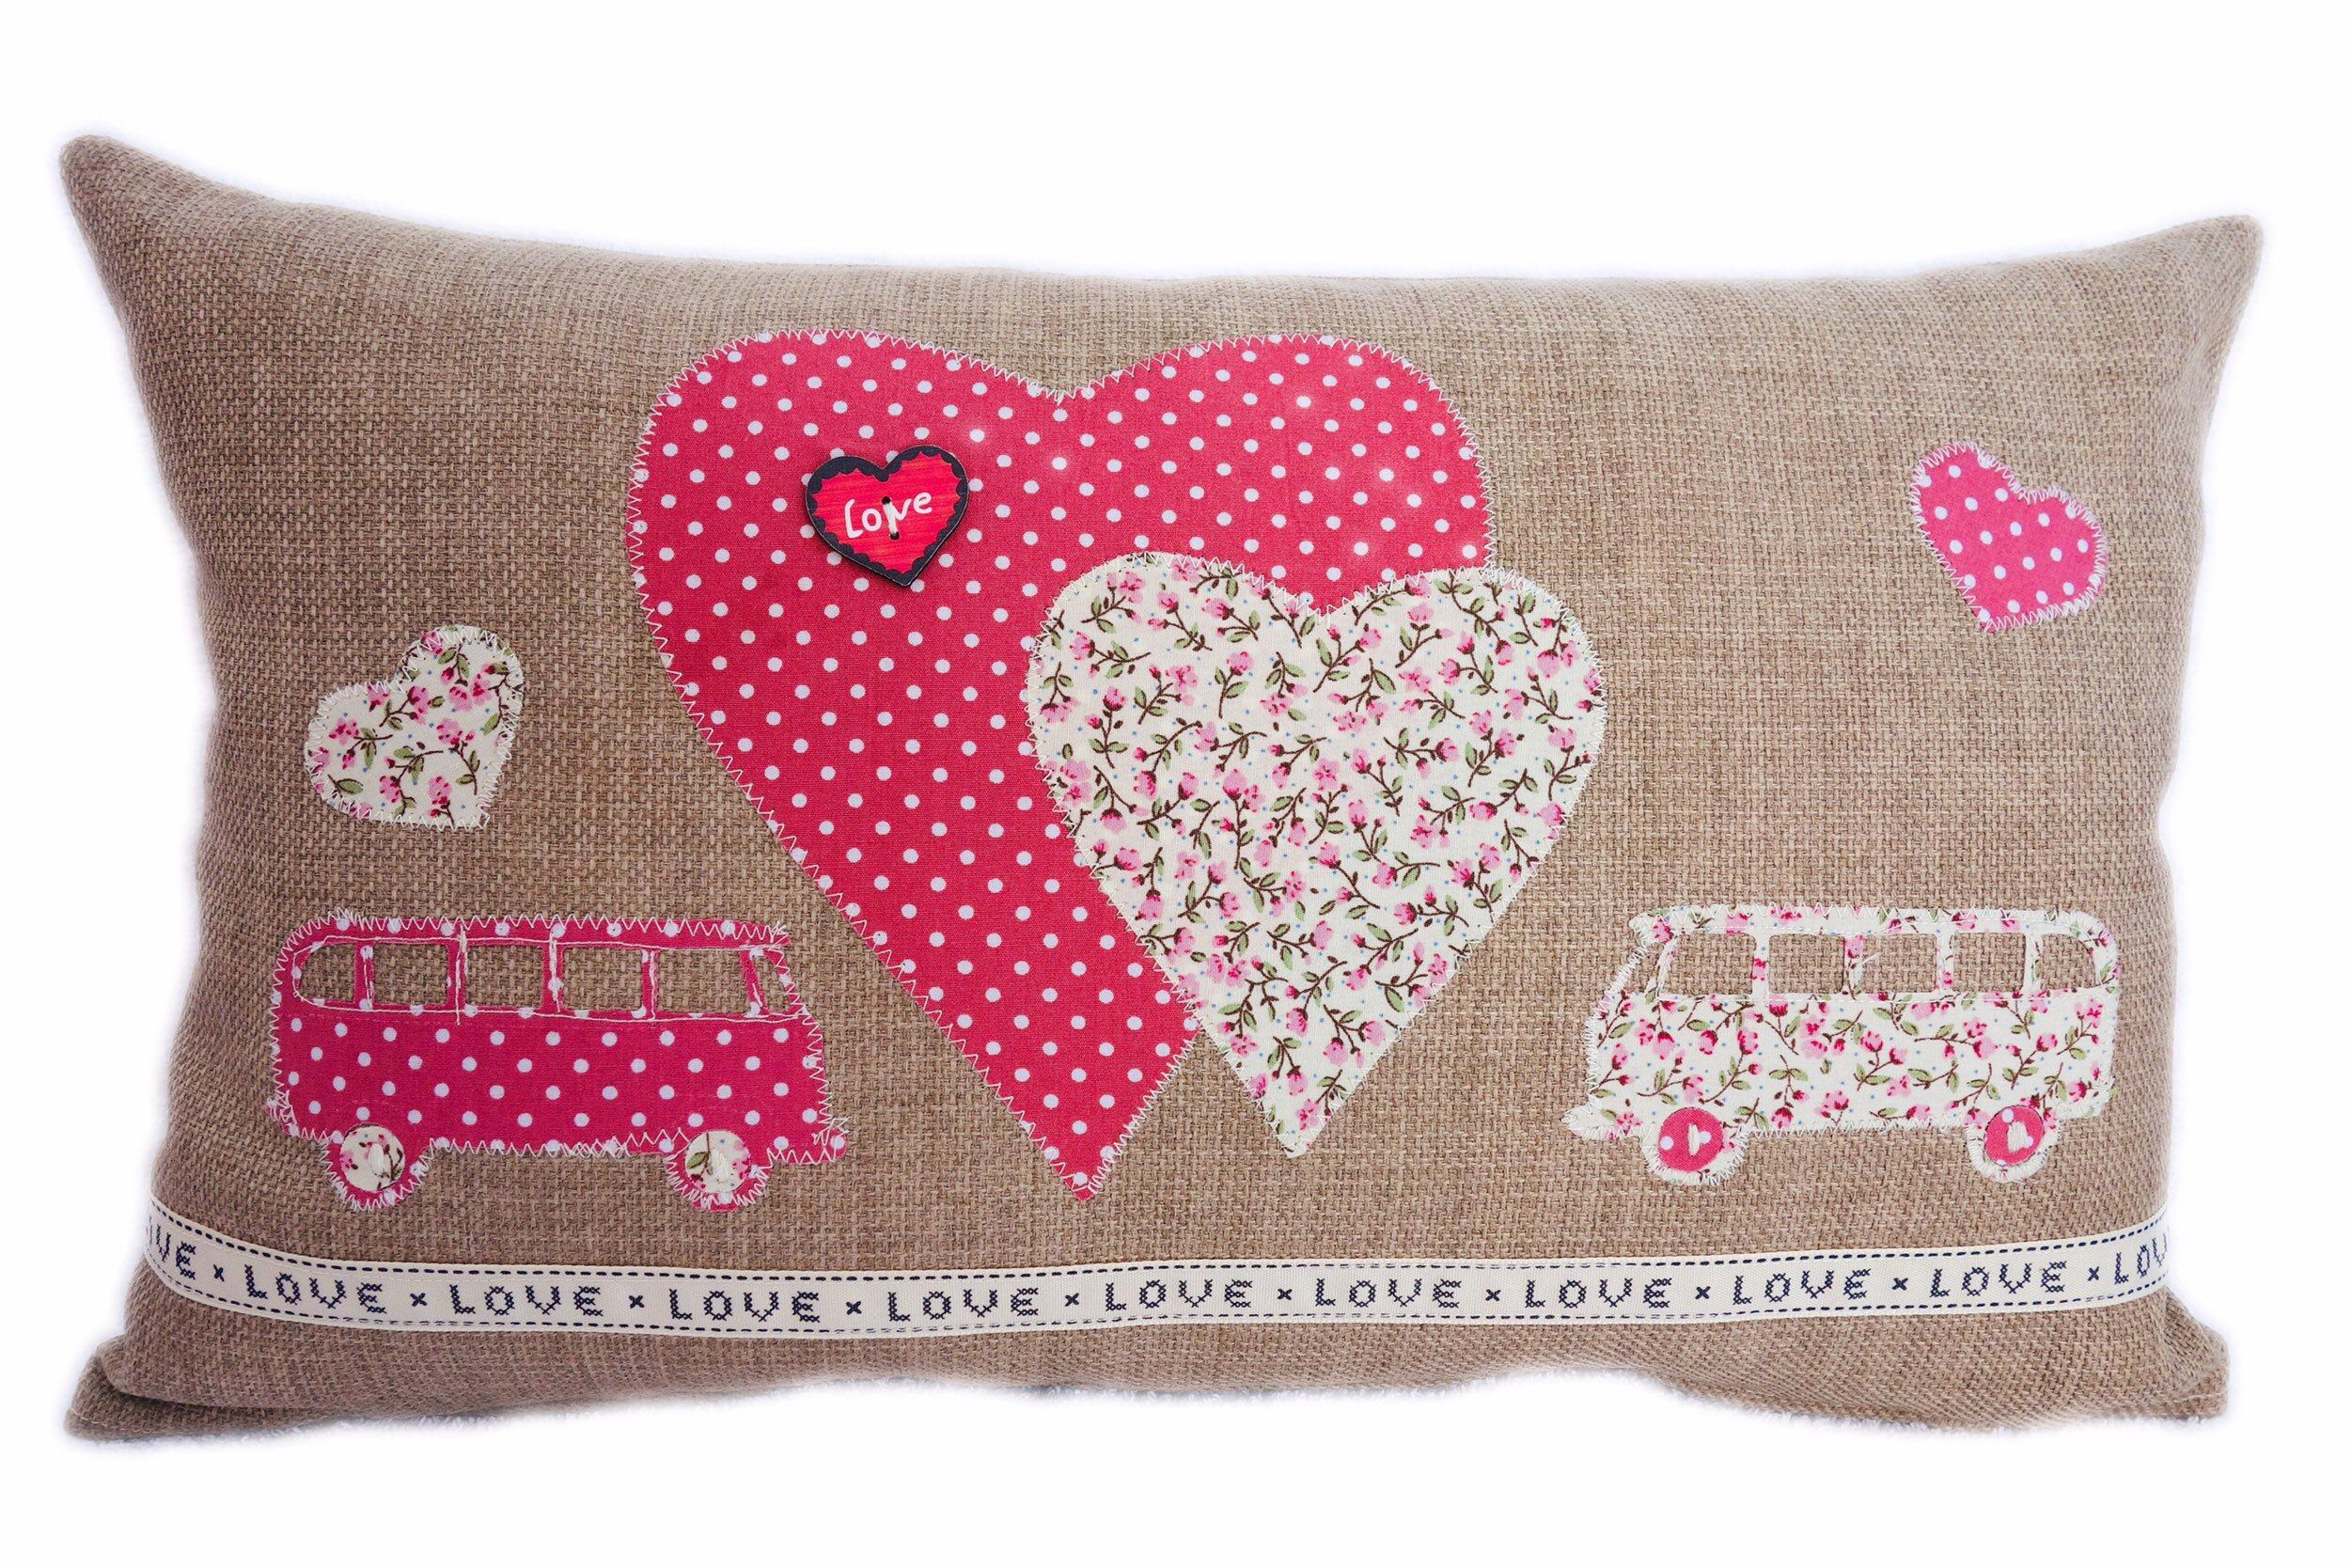 Campervan Appliqué Decorative Feature Cushion, Pink and Floral Campers and Hearts design  Excite